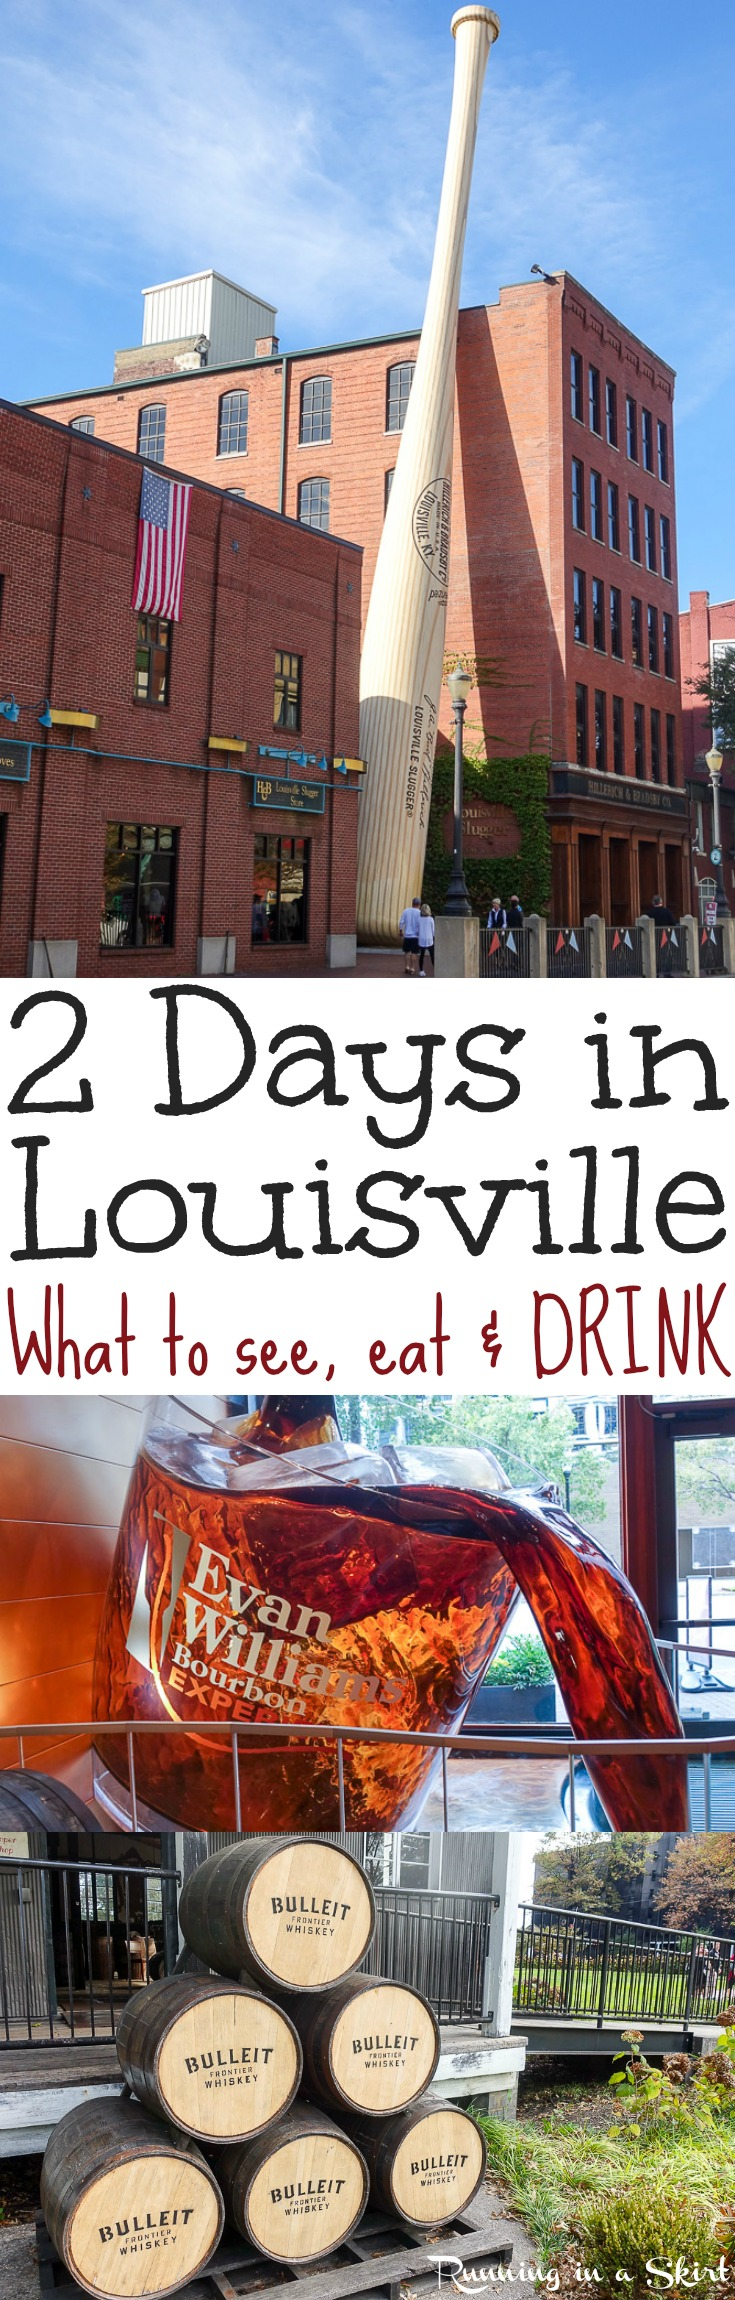 Things to Do in Louisville, Kentucky - 2 Days in Louisville?  Visit the Bourbon Trail distilleries in the area (Jim Beam, Evan Williams, Angel's Envy + more) and also find the best restaurants, attractions and nightlife in downtown... including 4th Street and the Louisville Slugger Museum! / Running in a Skirt via @juliewunder